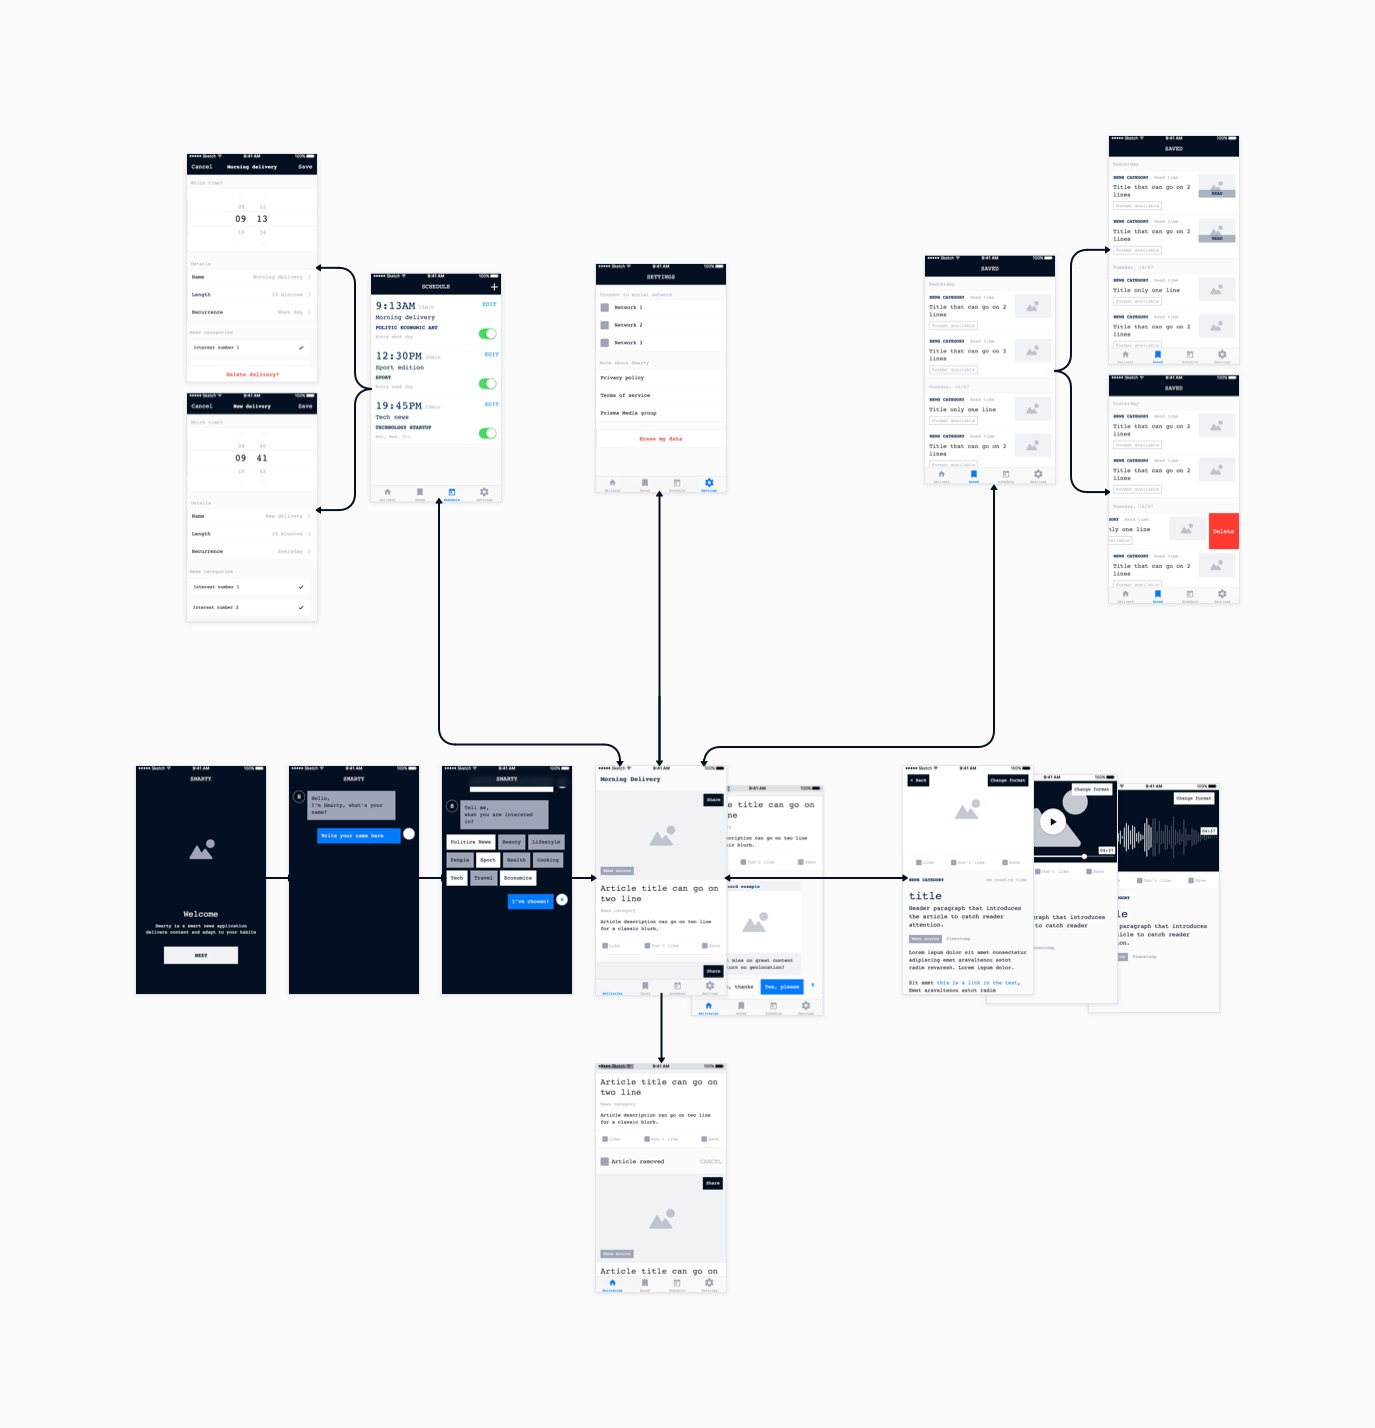 The final user flow of the application